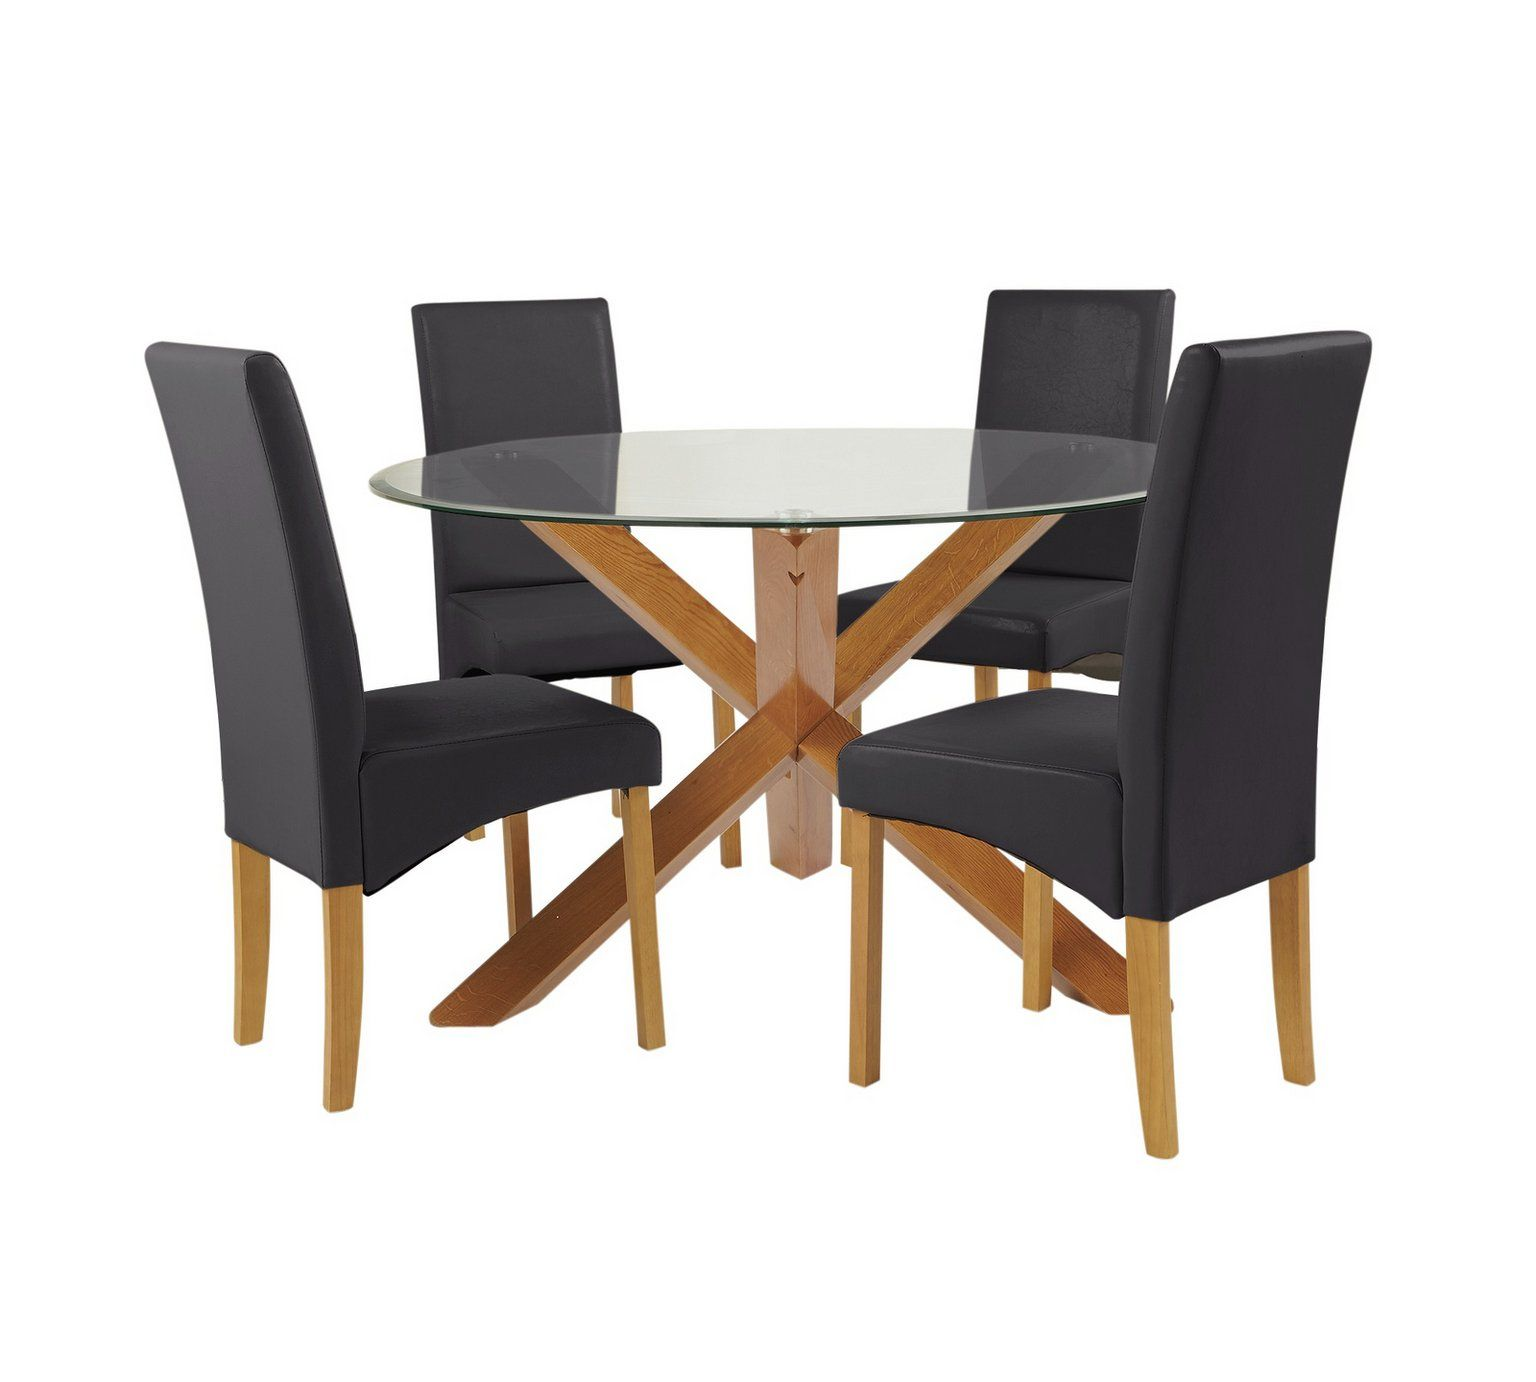 Argos Round Garden Table And Chairs